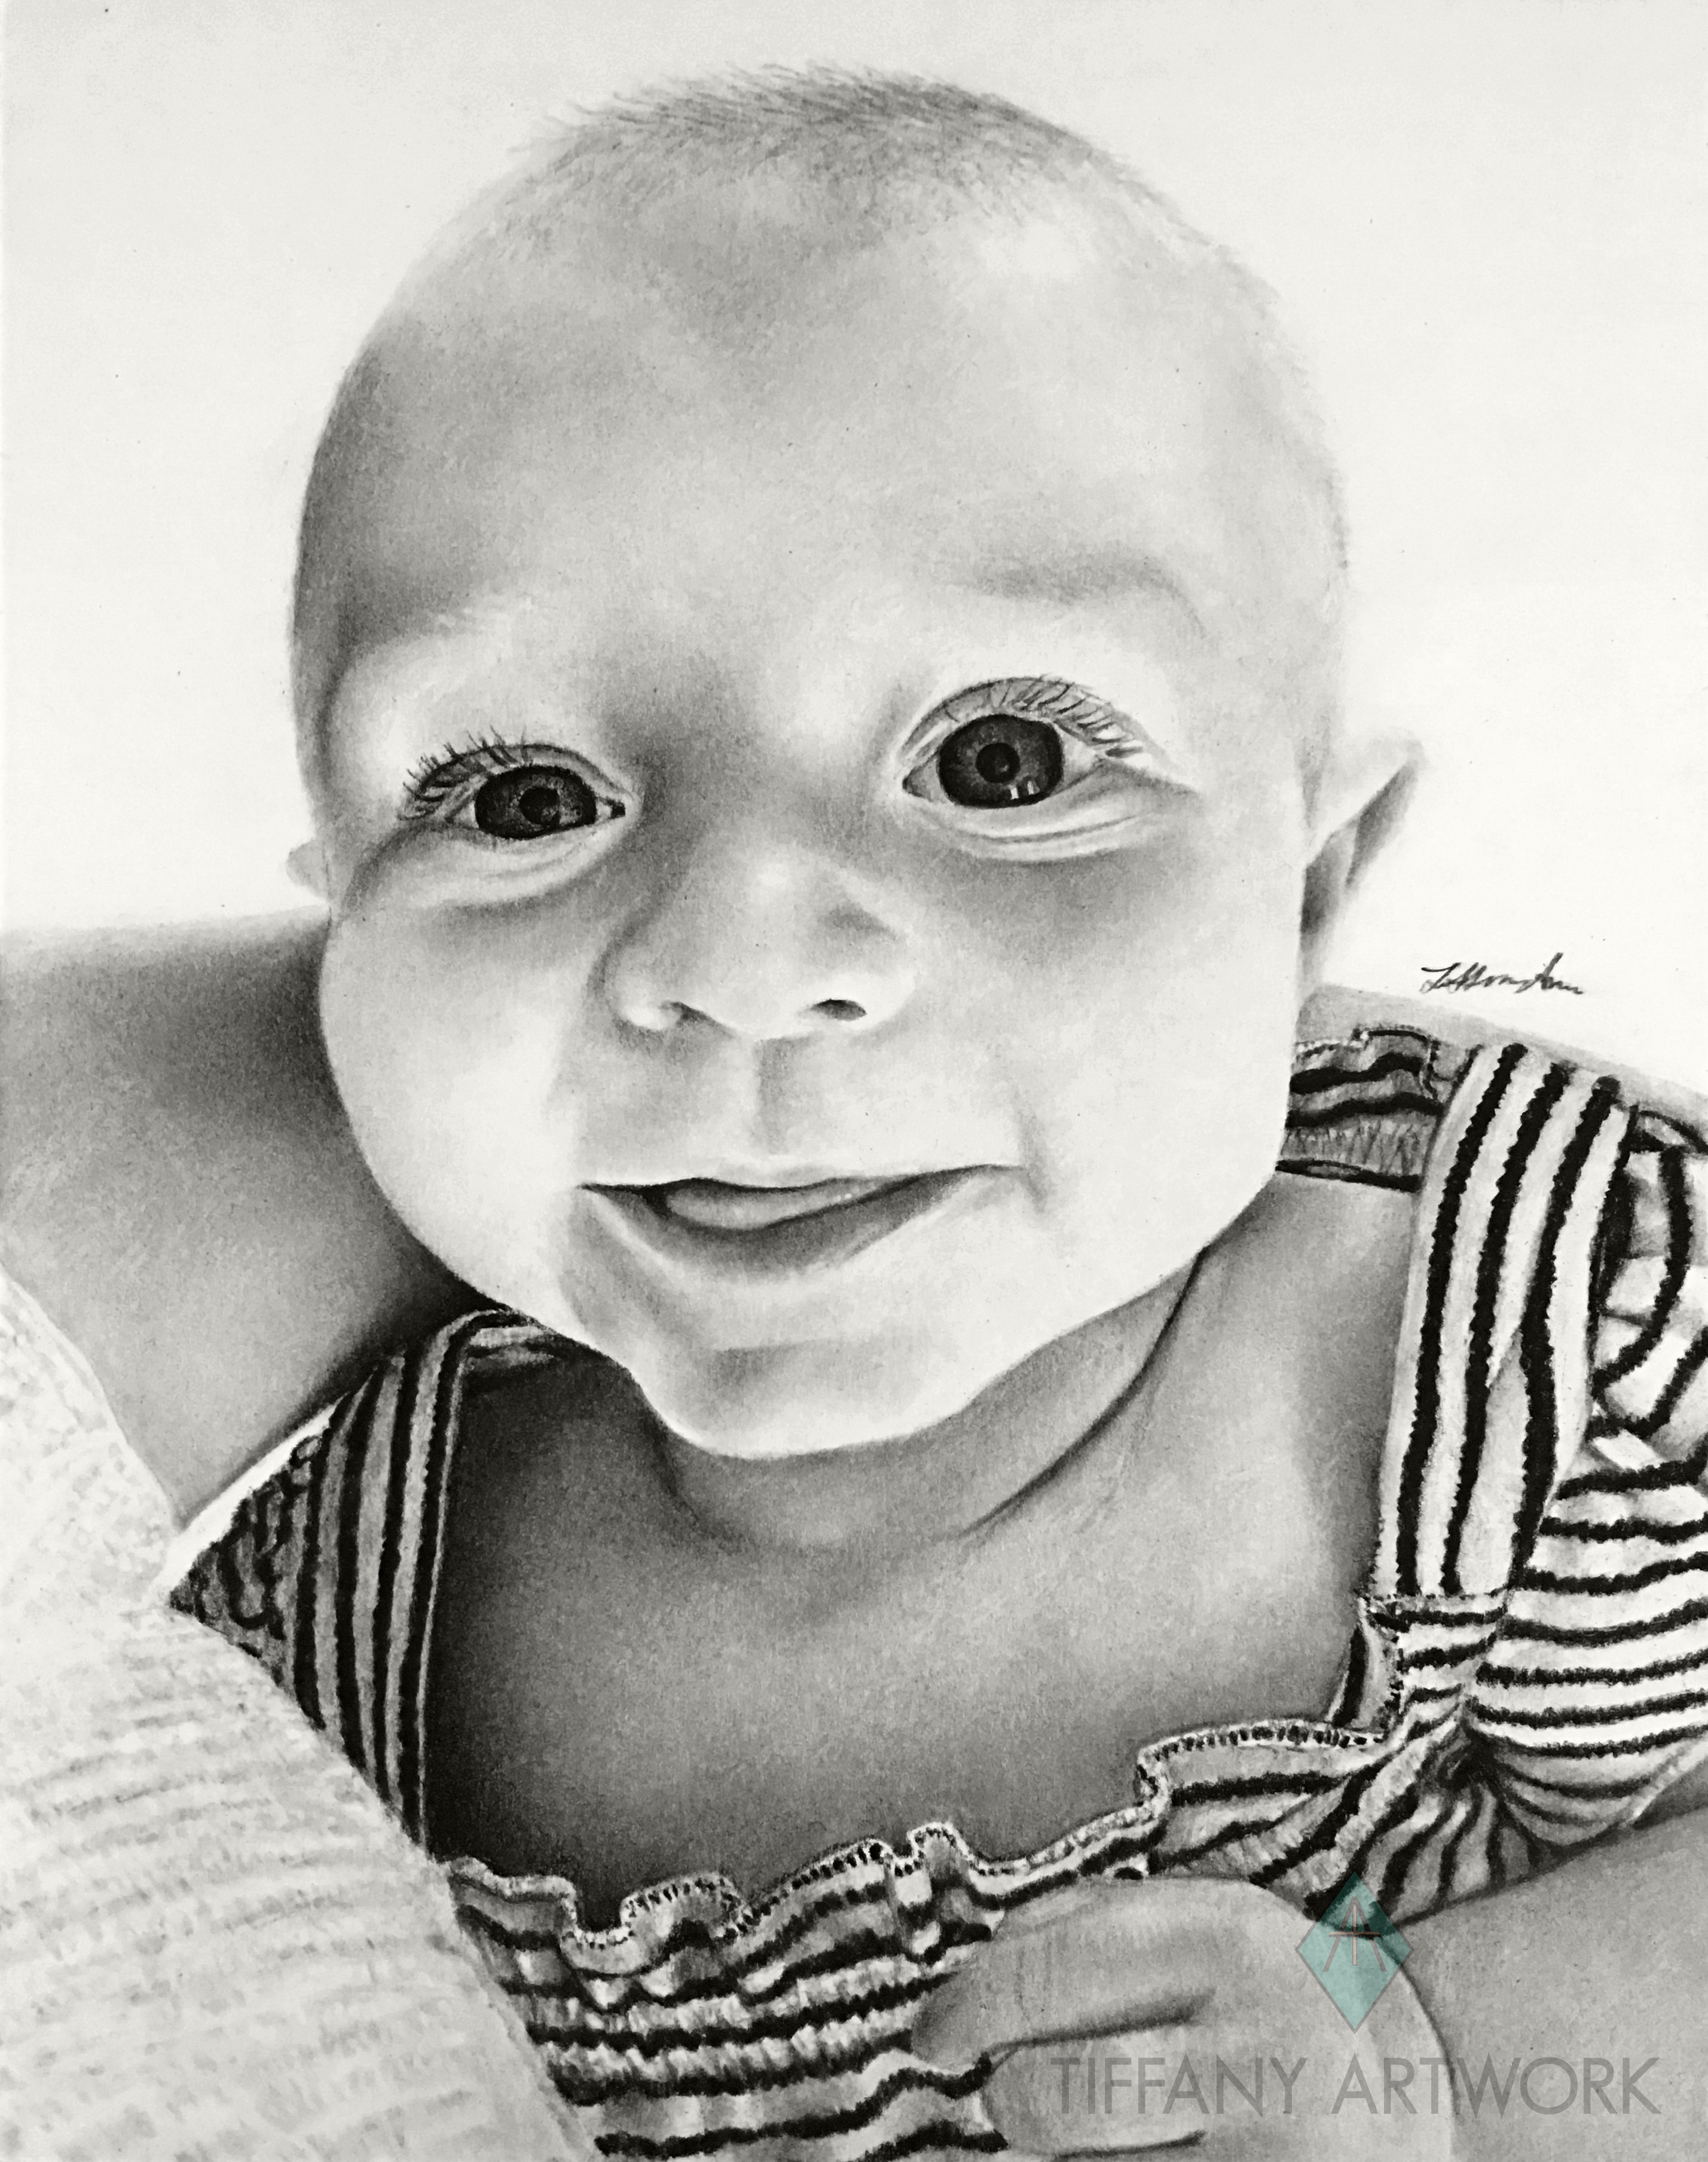 hyperrealistic charcoal portrait hand drawn cute baby in mothers arm